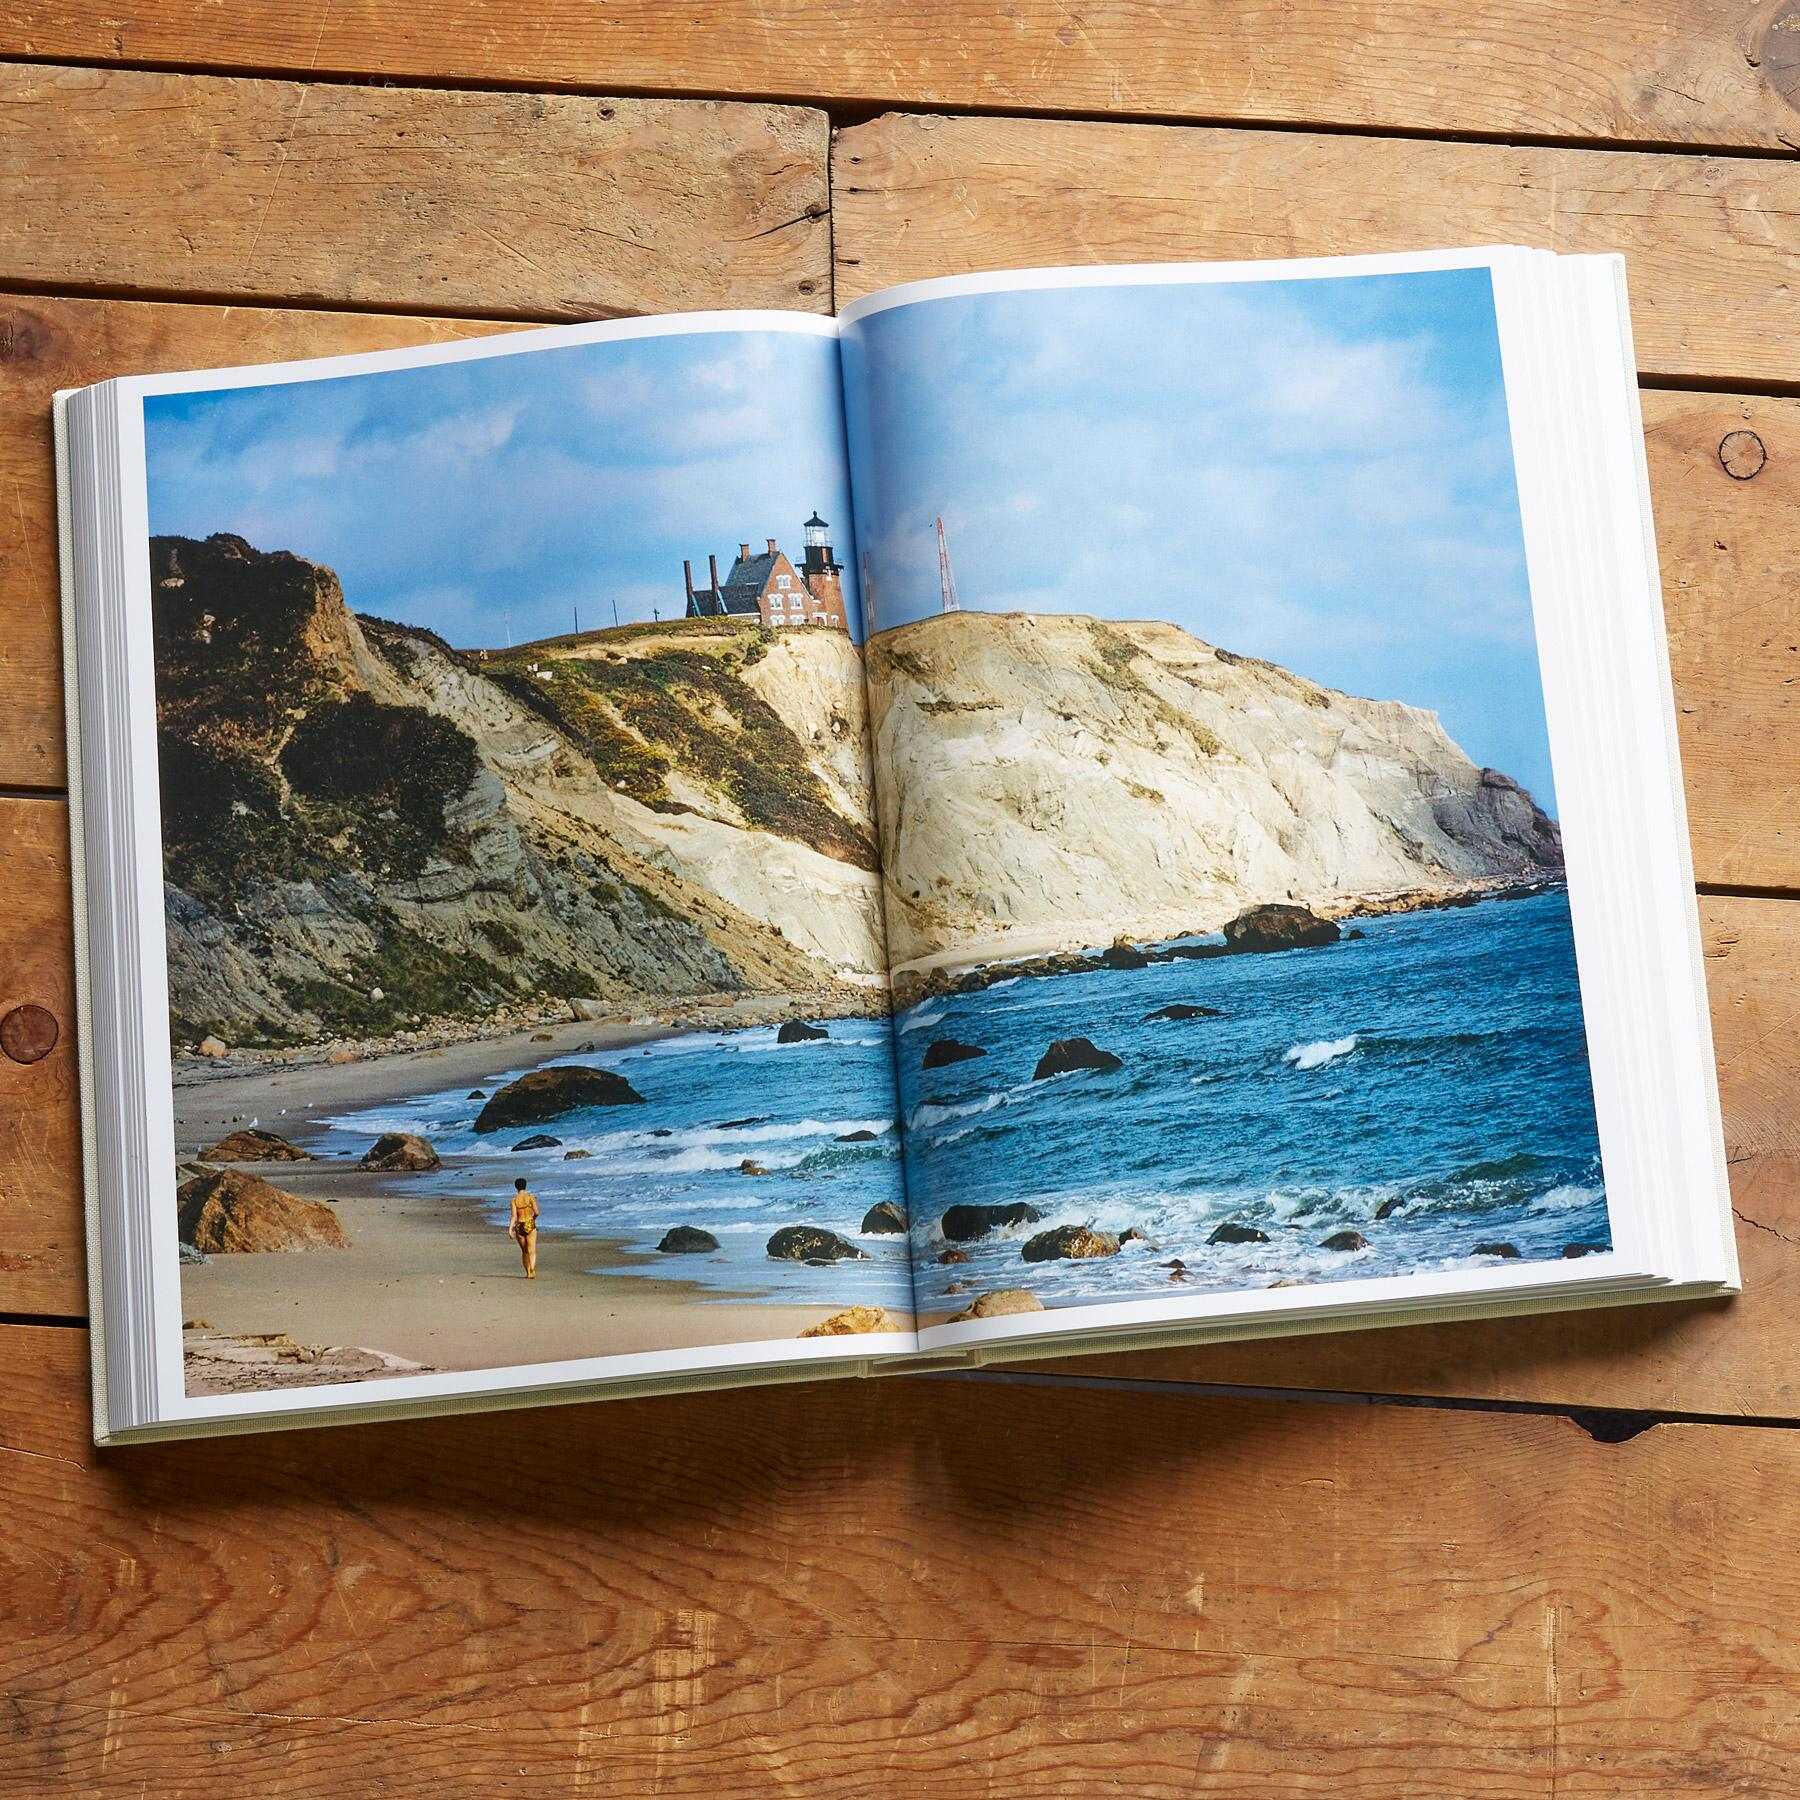 NATIONAL GEOGRAPHIC THE UNITED STATES OF AMERICA BOOK: View 7